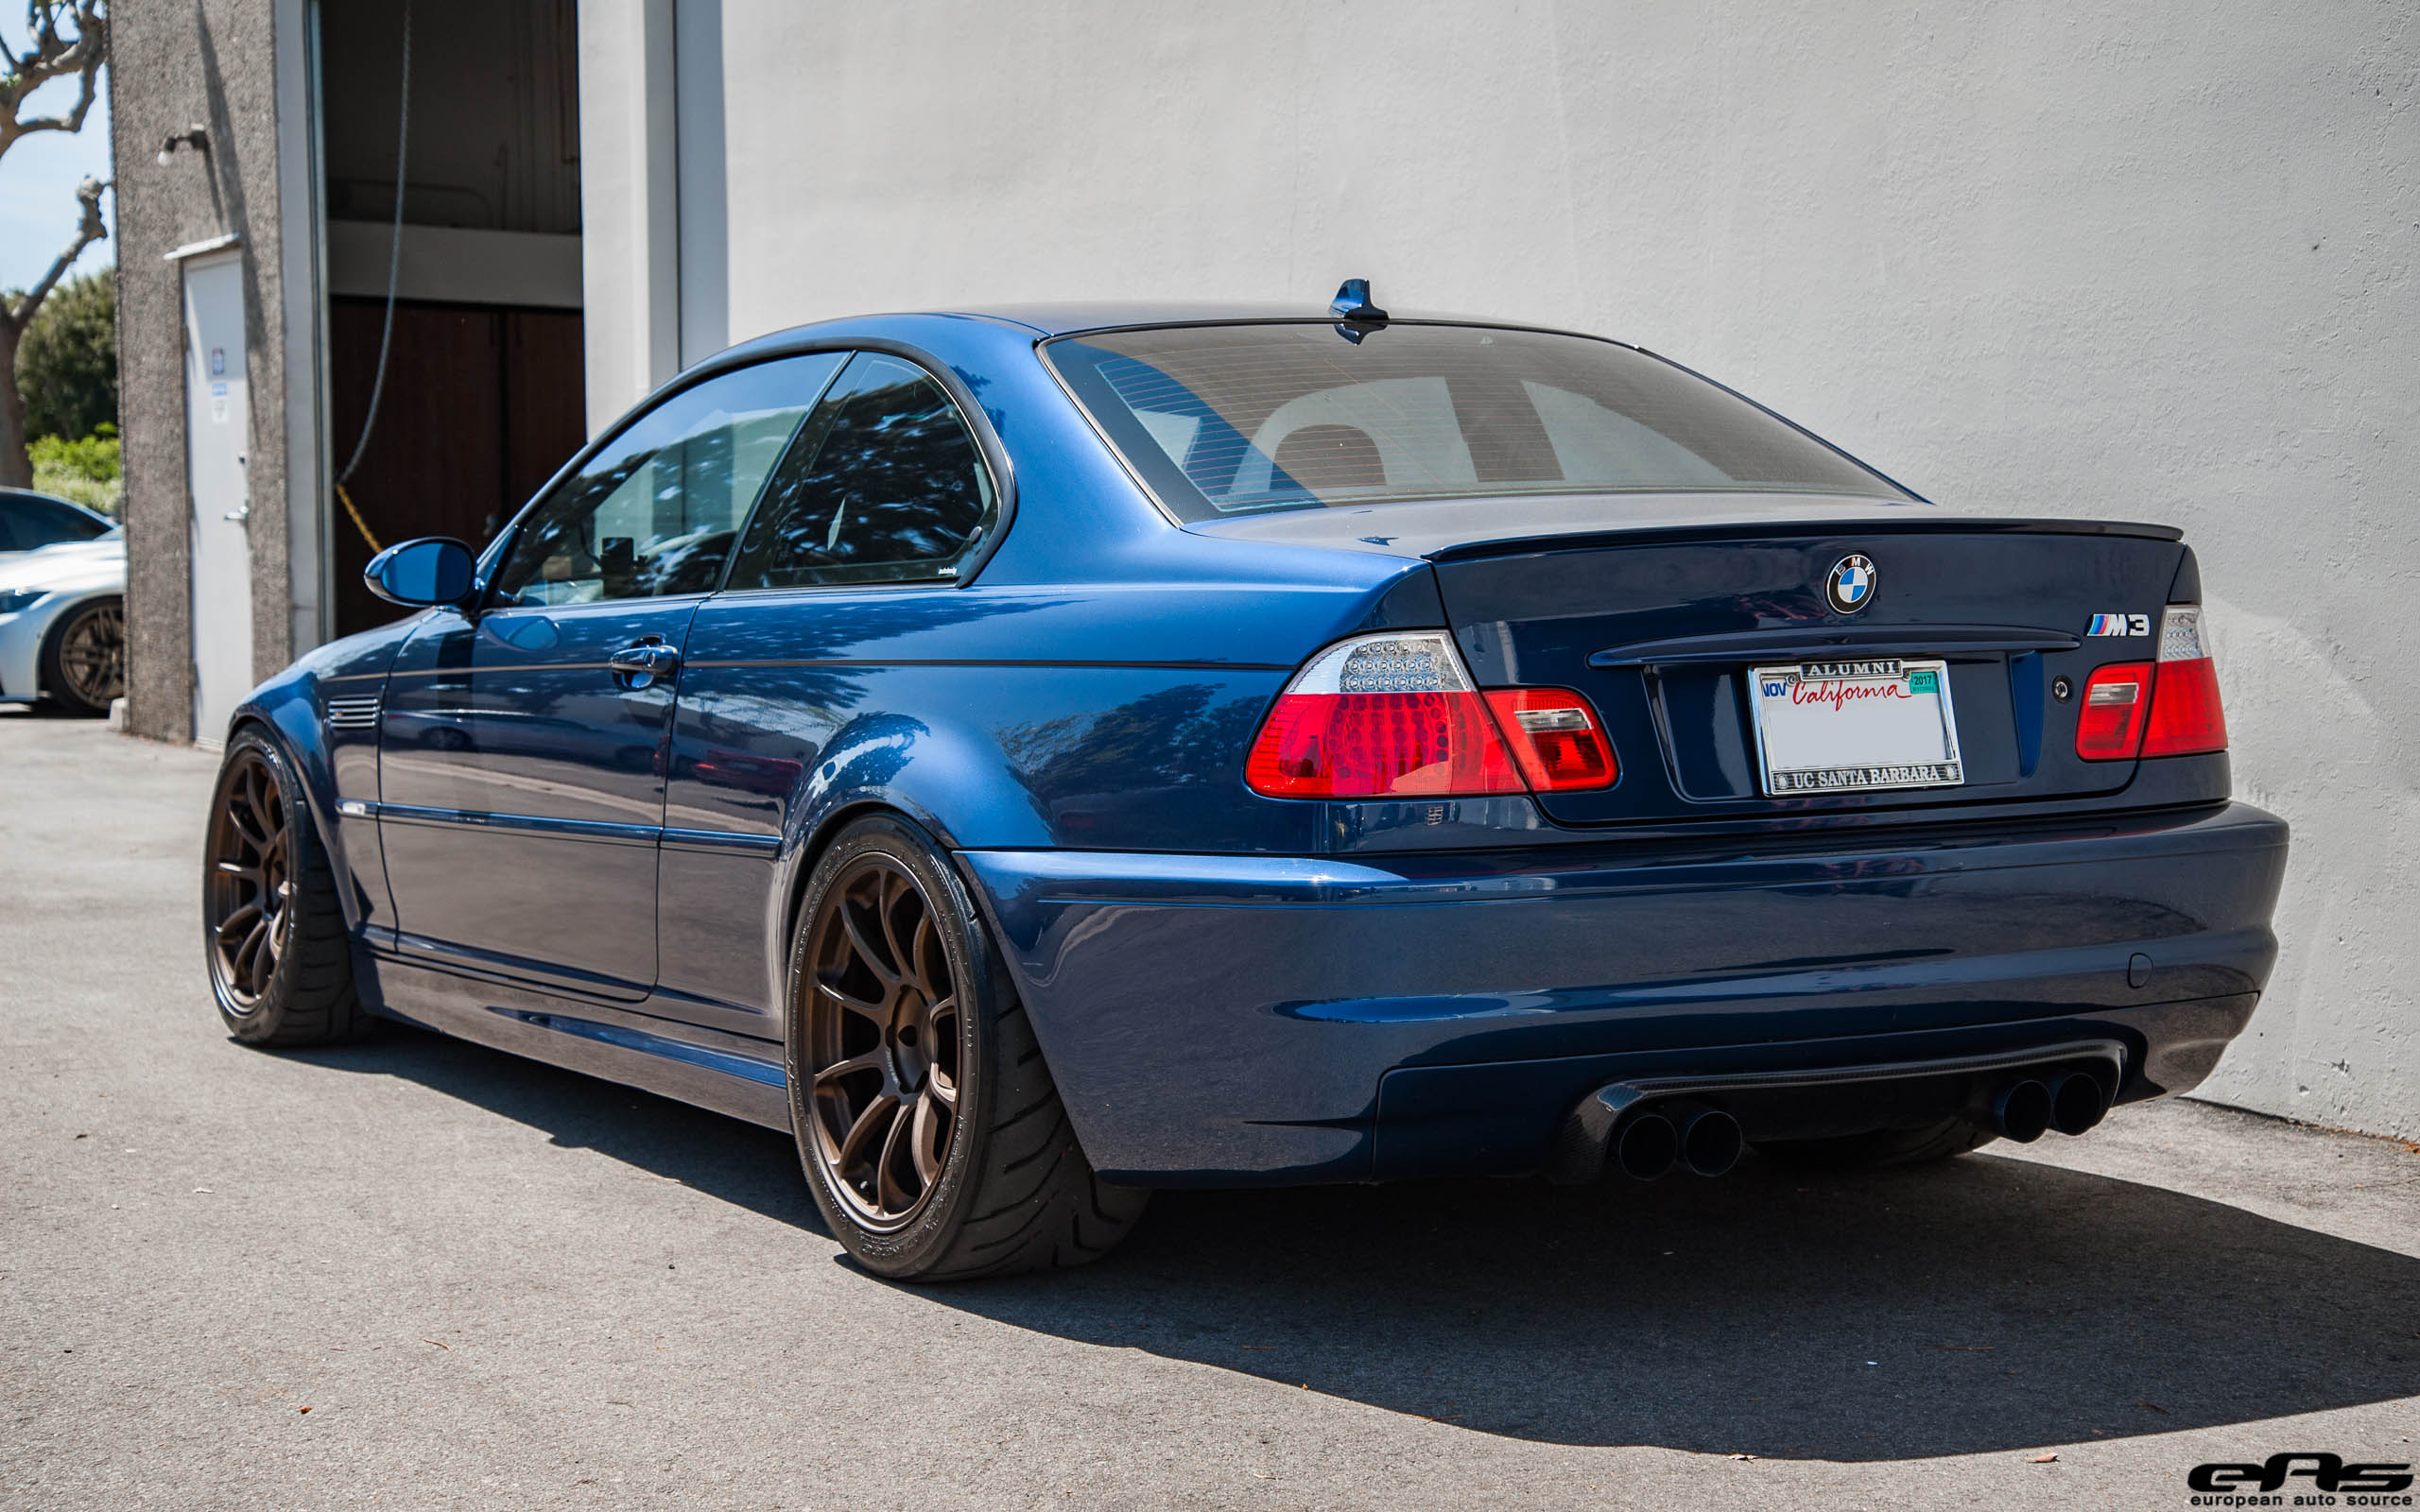 Tuner Car Wallpaper Hd A Mystic Blue Bmw E46 M3 Gets Aftermarket Goodies At